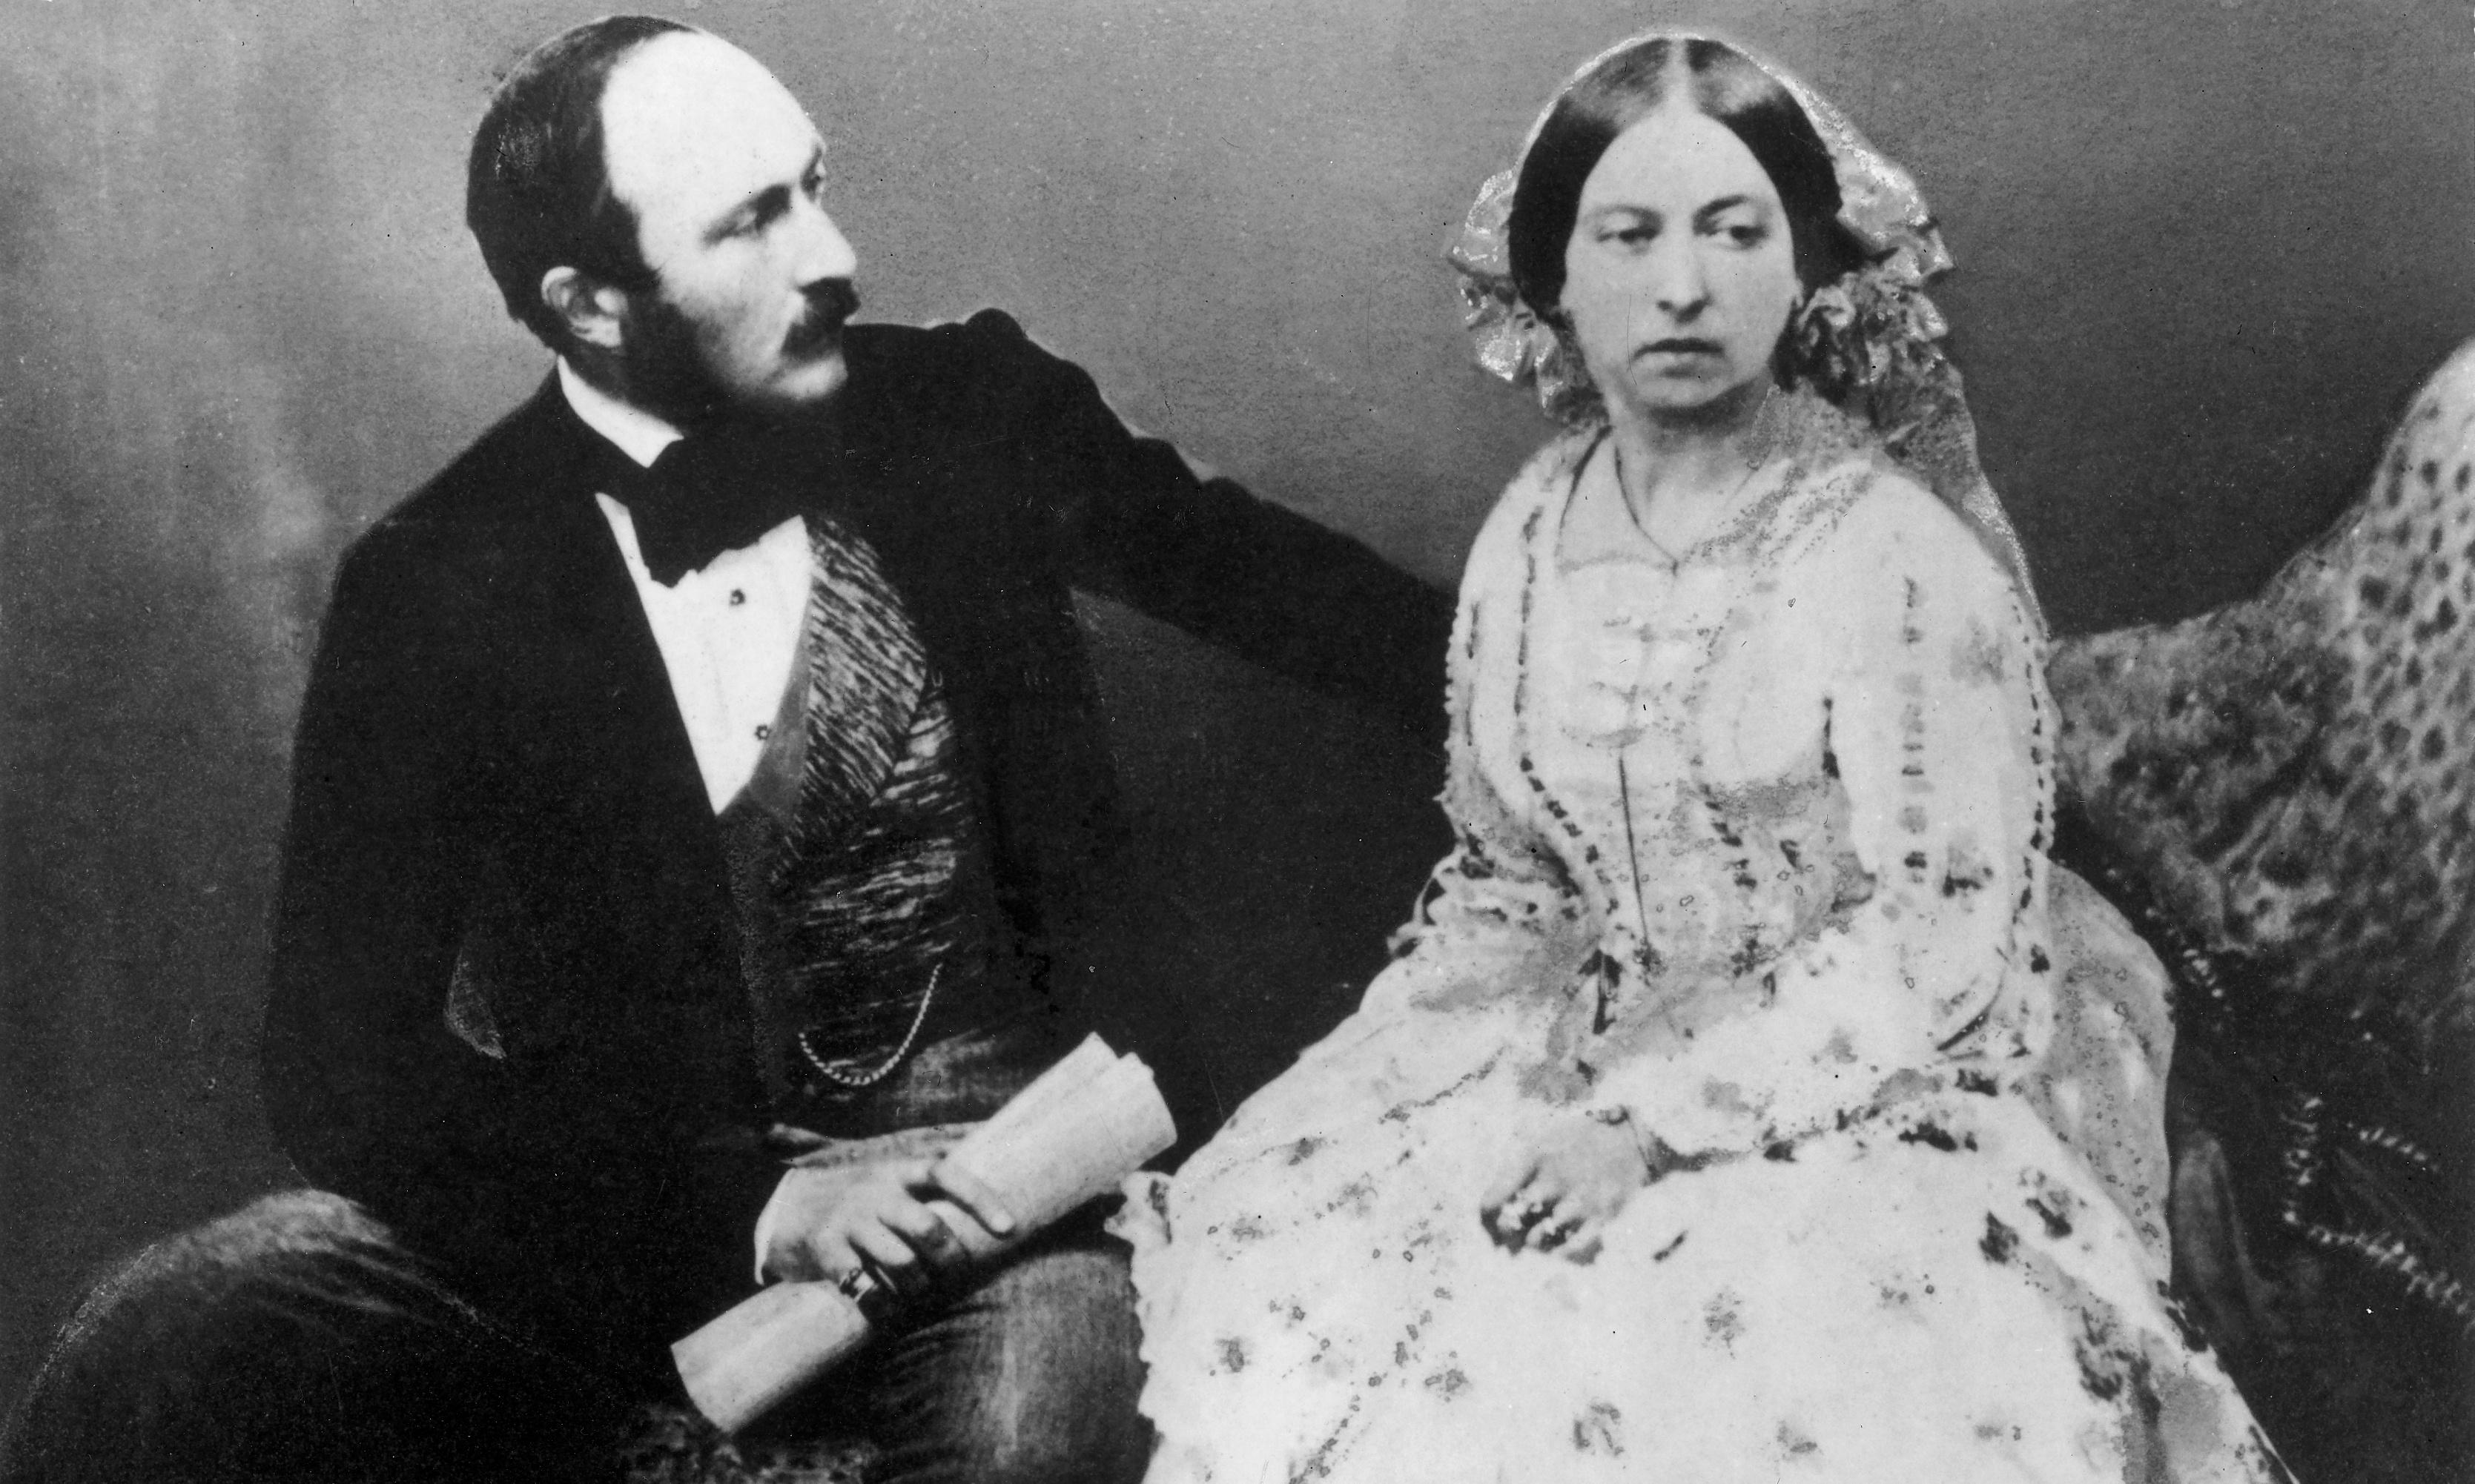 The Victorians were no prudes, but women had to play by men's rules